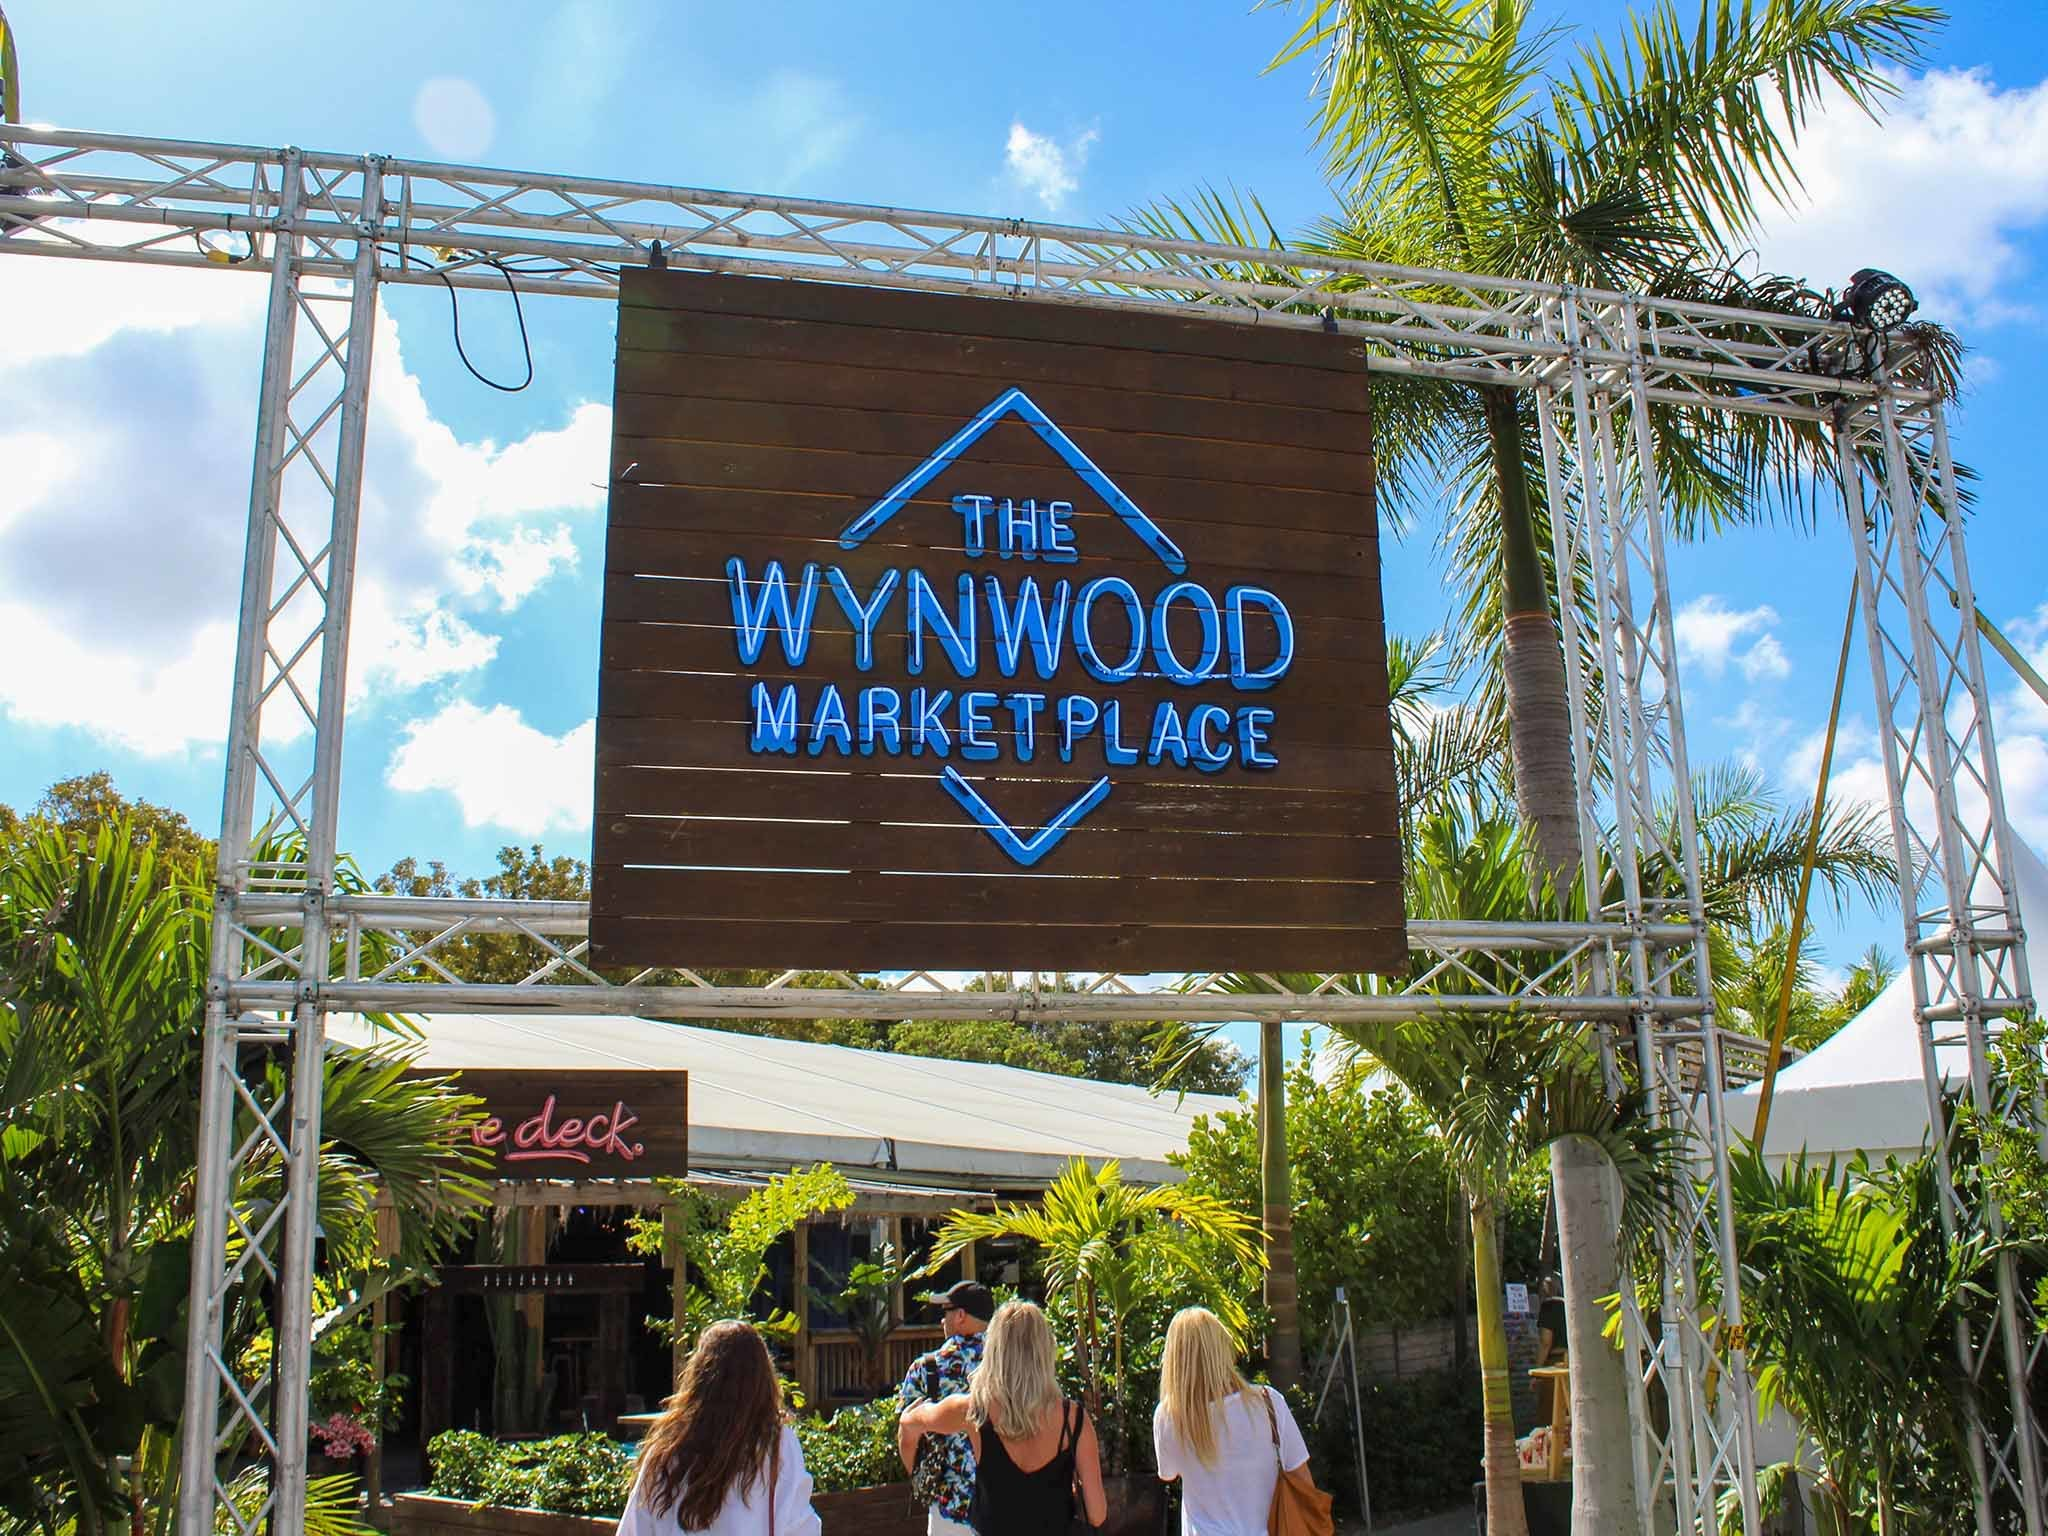 With large gatherings on hold, this Wynwood events producer is finding new ways to connect with the community